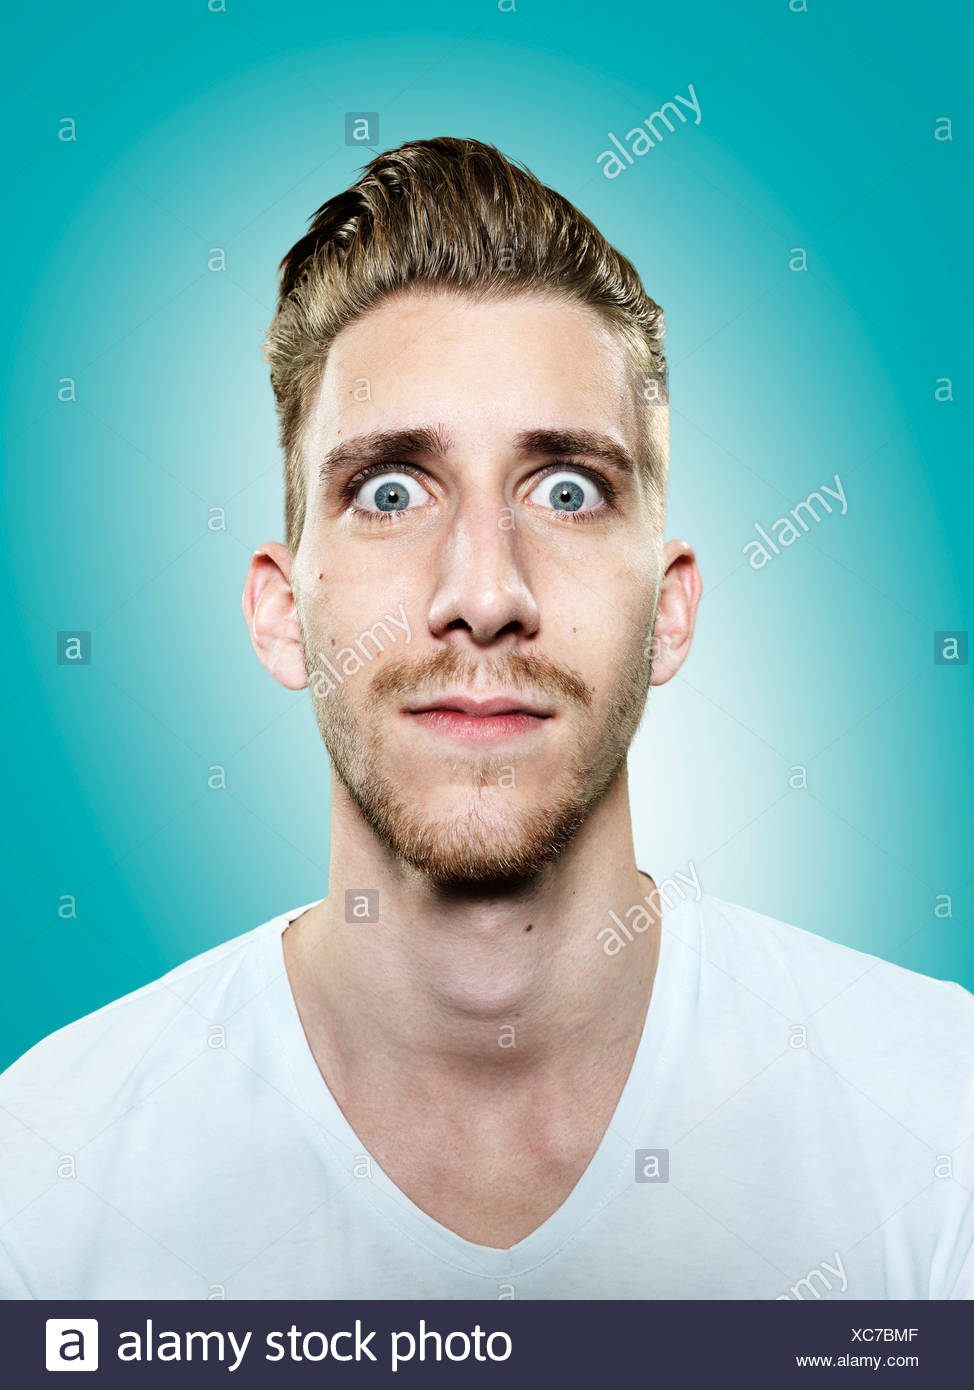 Portrait of young man with eyes wide open, studio shot - Stock Image